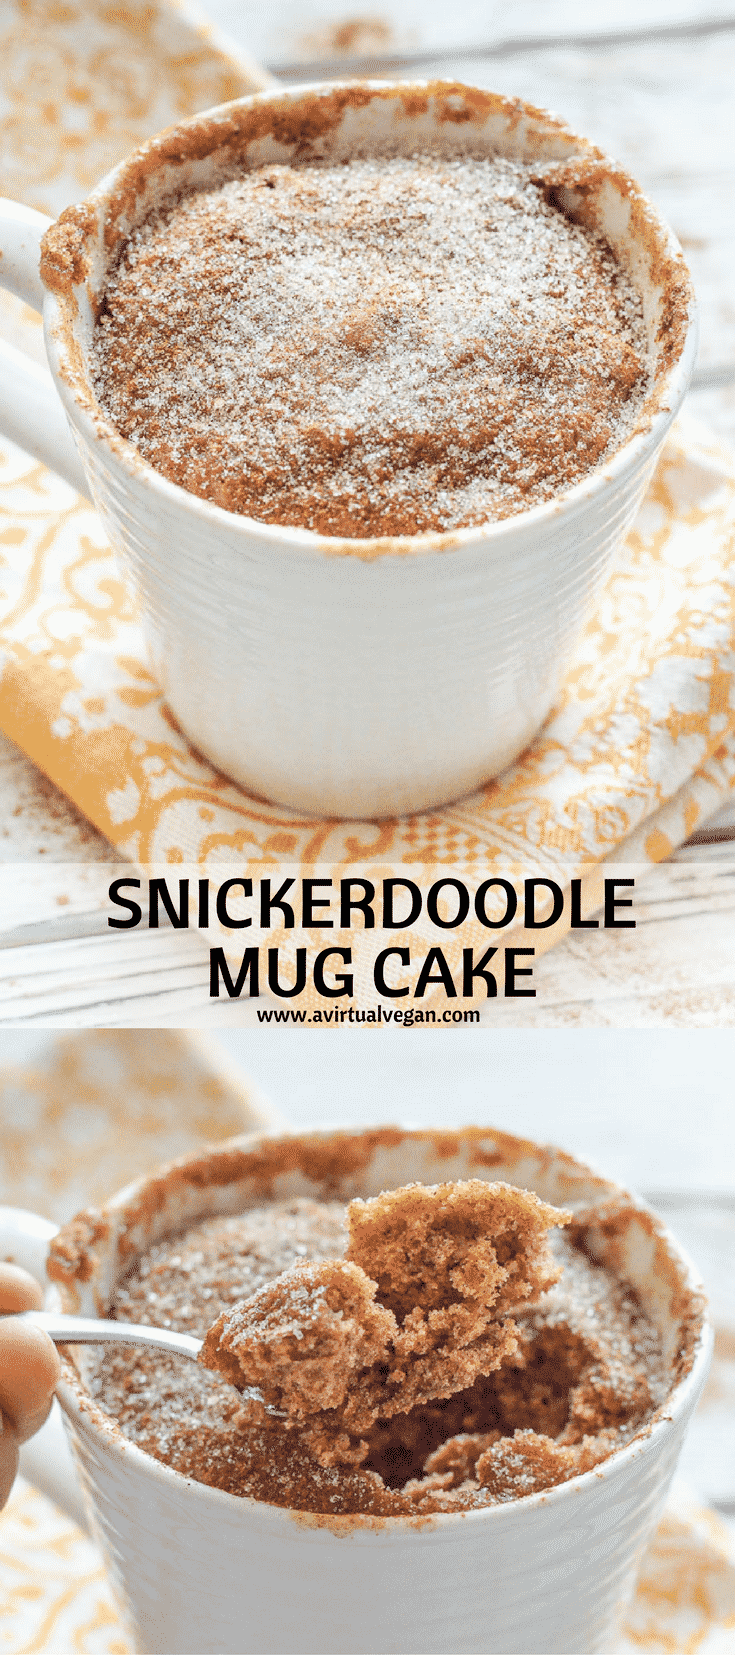 Have dessert ready in minutes with my super quick & easy Snickerdoodle Mug Cake. It's soft, fluffy & cinnamon-y & perfect for when you want something sweet without making a full-blown dessert!  #mugcake #cinnamon #snickerdoodle #vegan